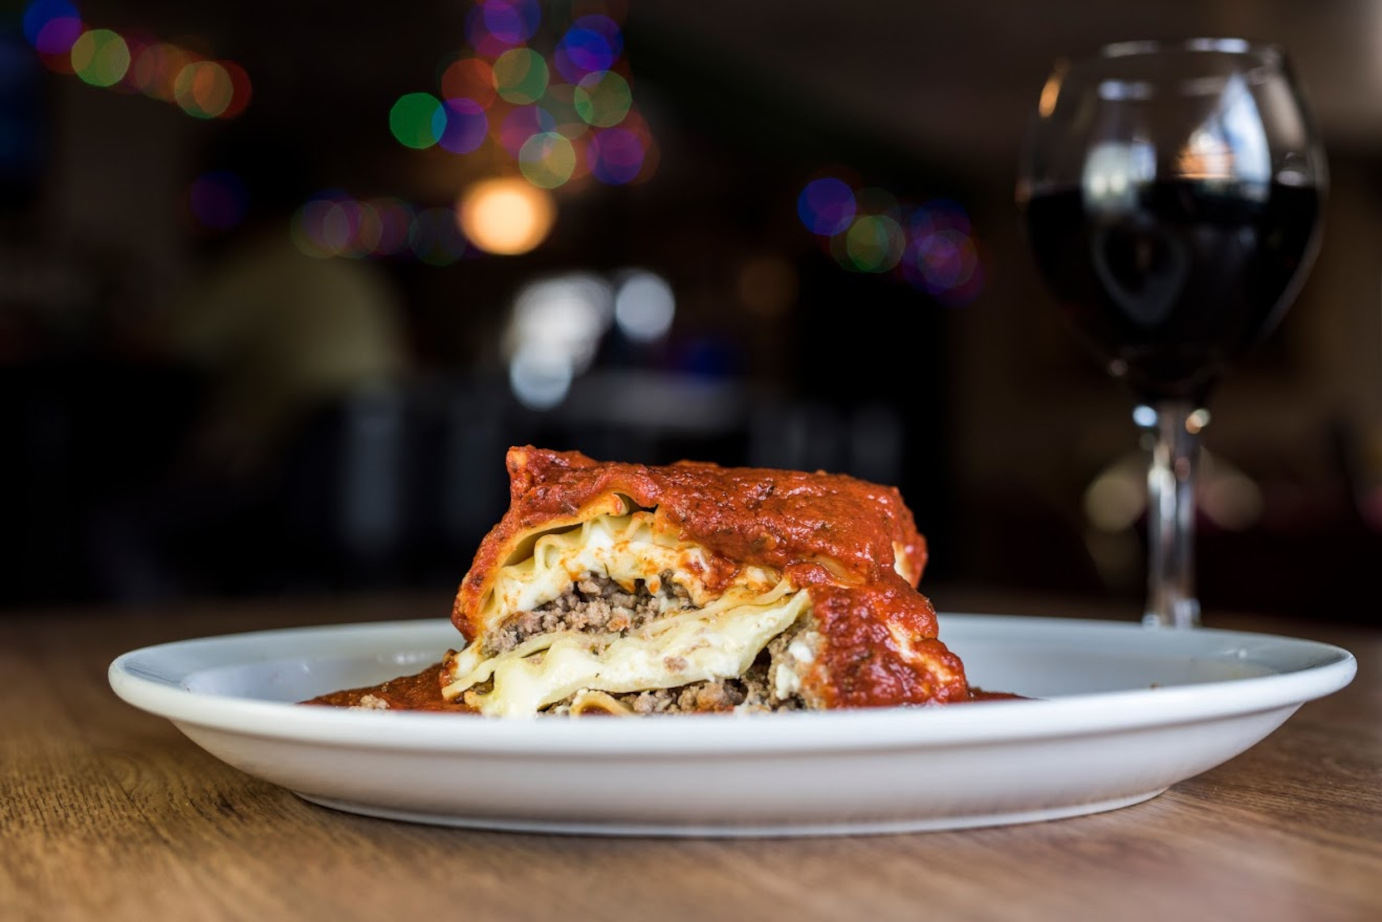 Lasagna and a glass of red wine